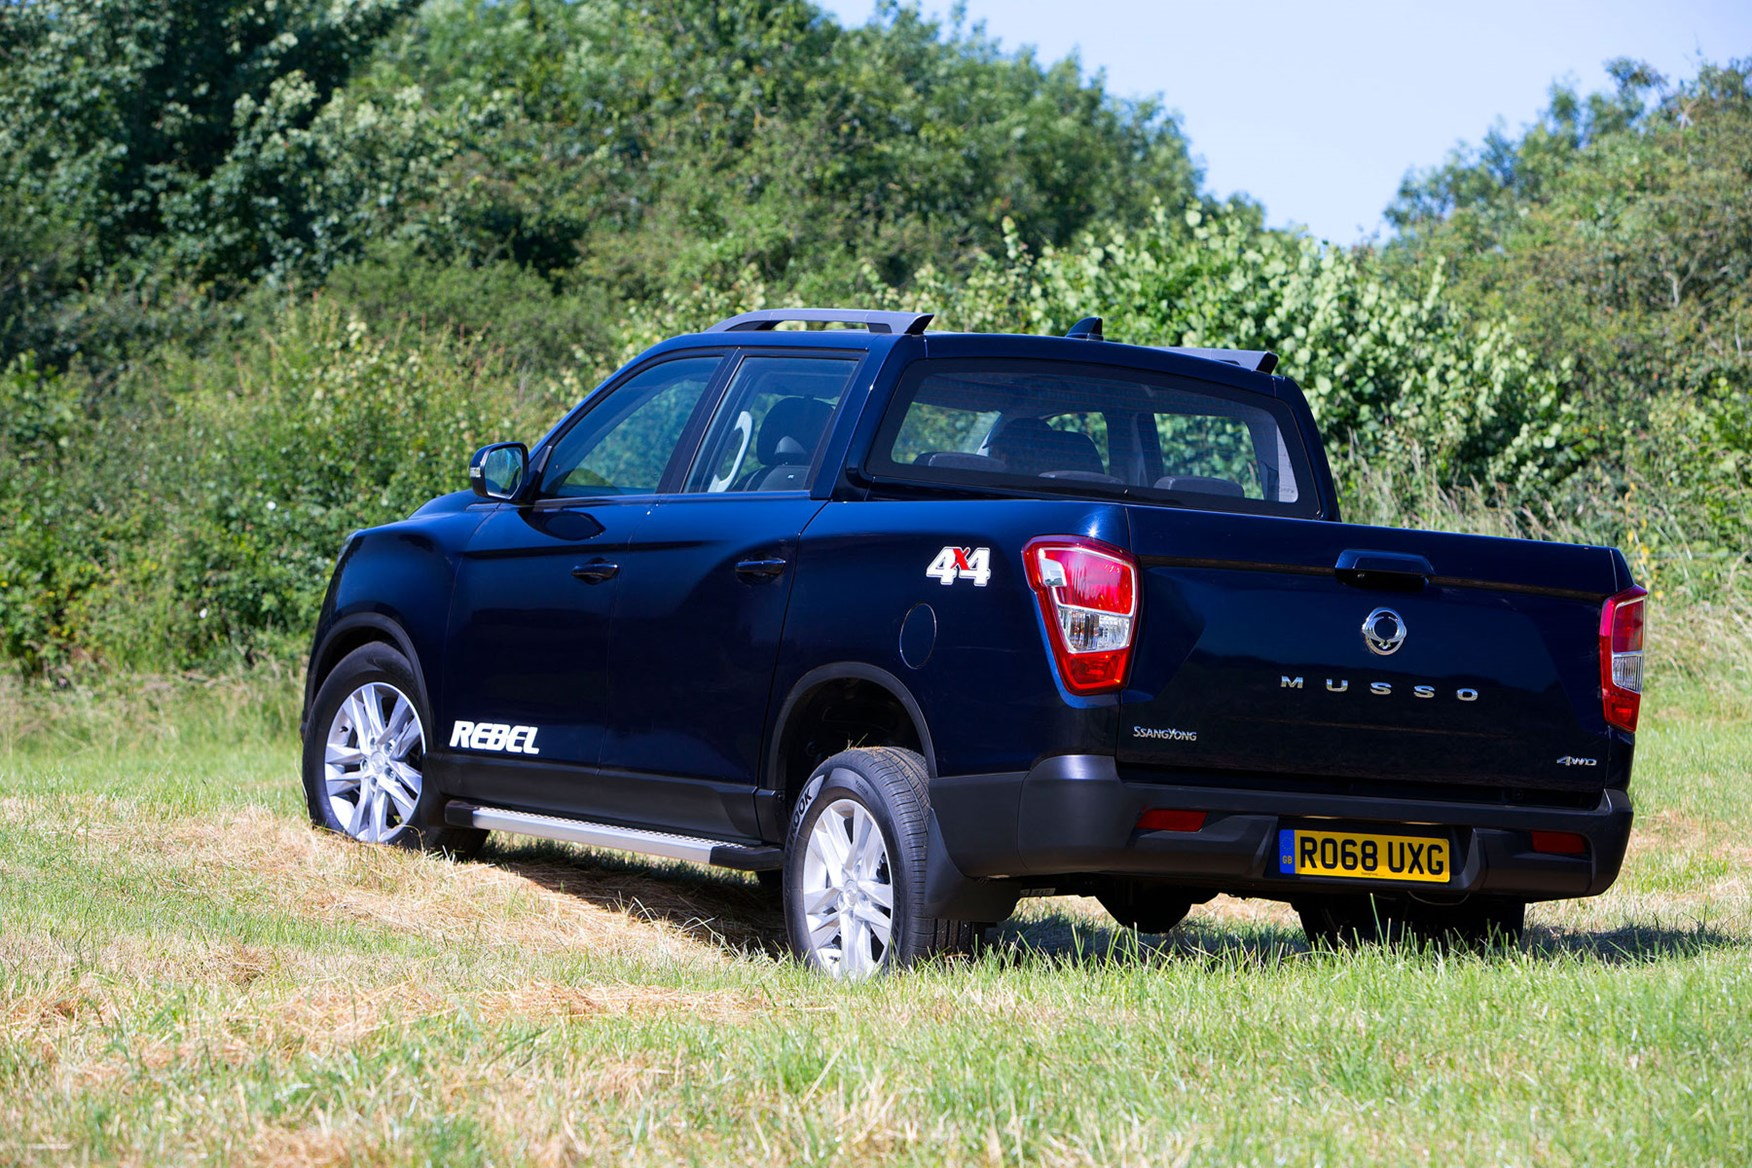 SsangYong Musso (2018-on) review, Rebel, rear view, off-road, blue